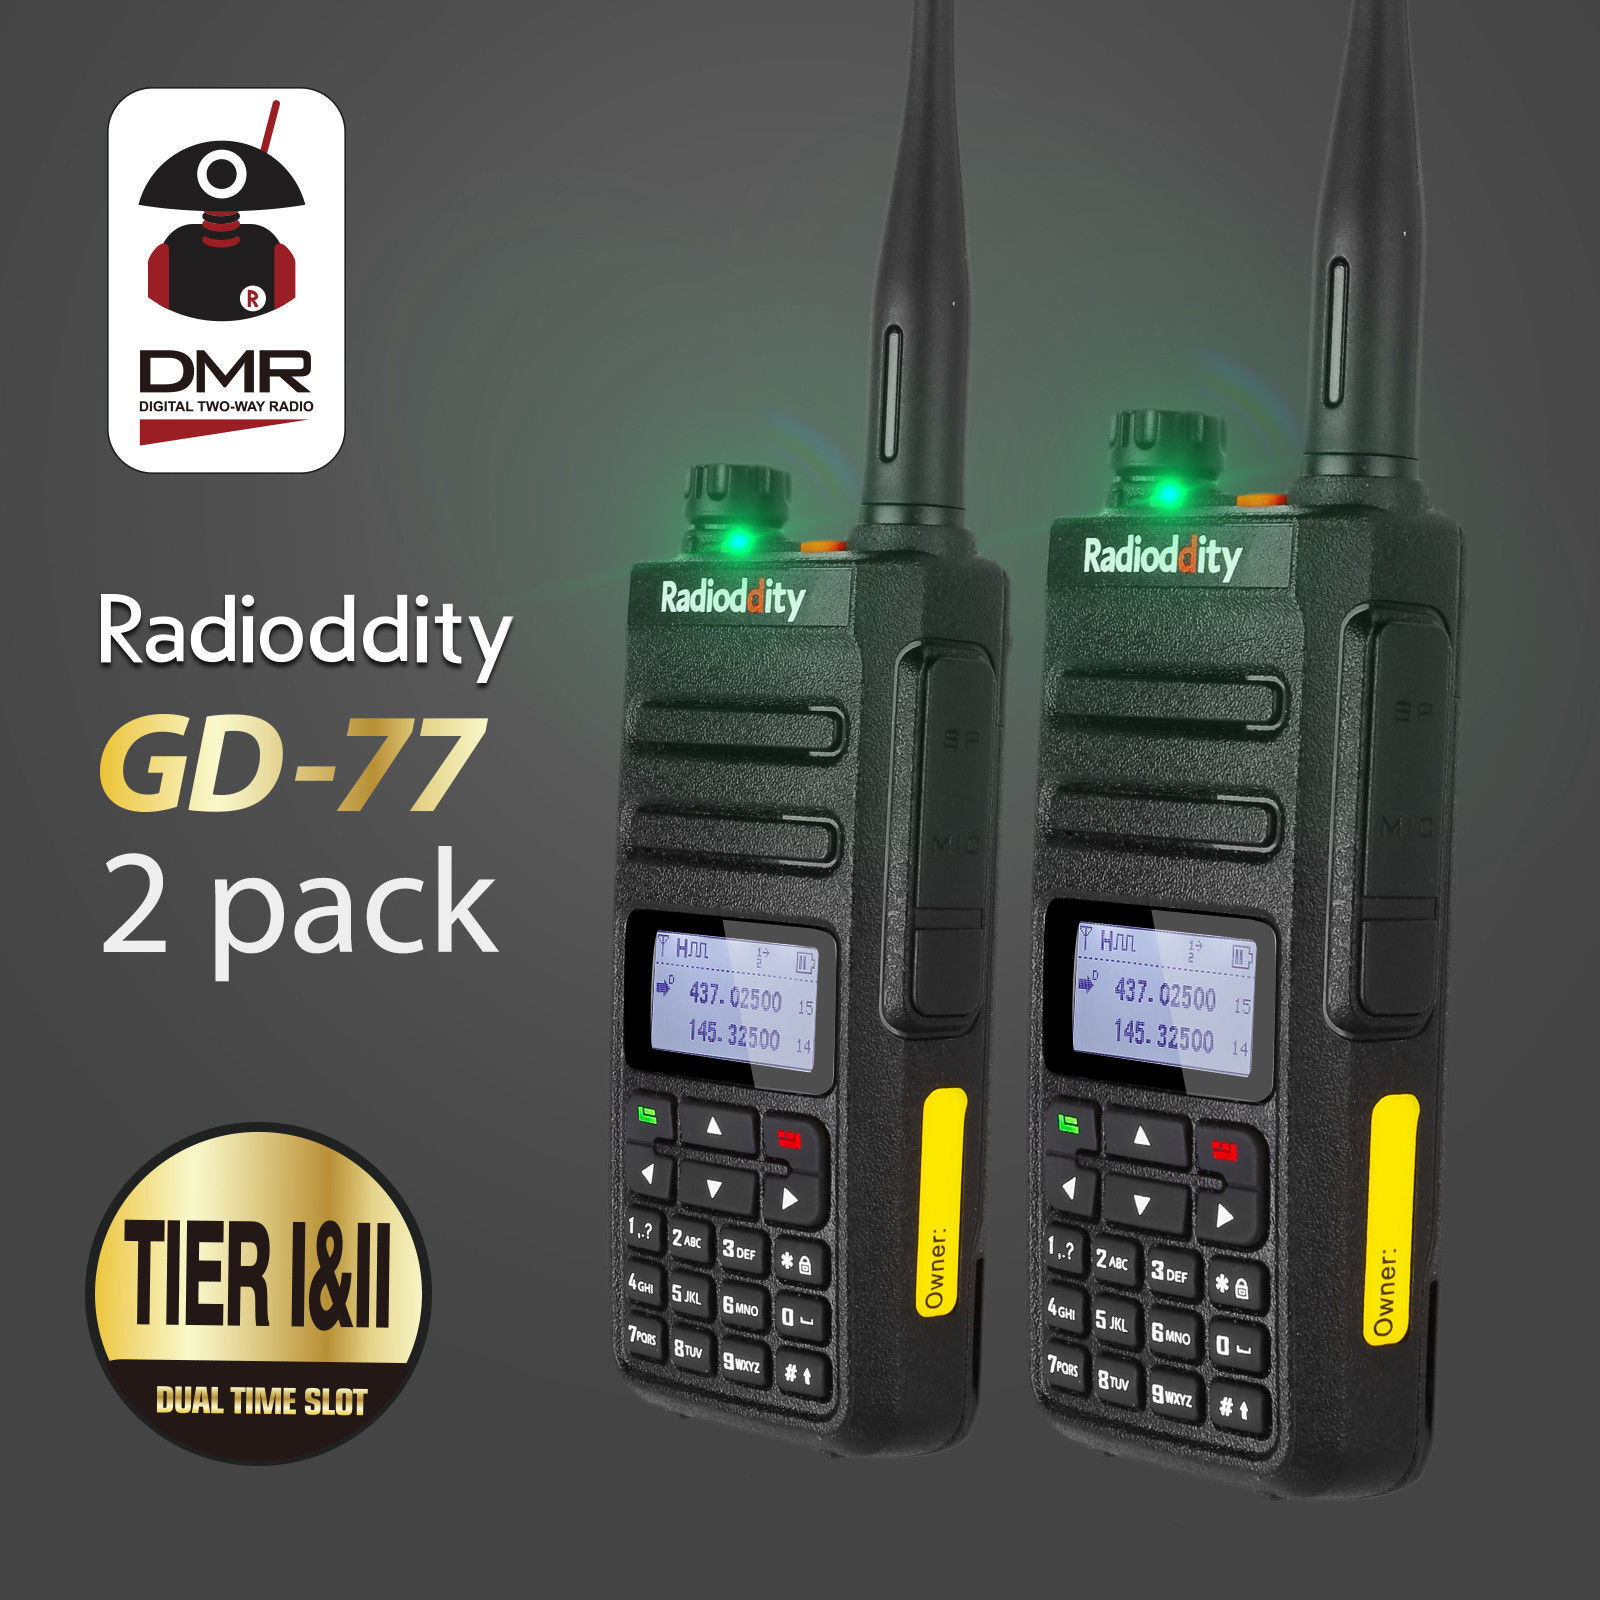 Baofeng Two Way Radio Tf 319 as well 121525253040 besides Dm4600 Dm4601 moreover Motorcycle Group Riding Signals Motorcycle Safety Month together with 11169309 Event Production Show Attracts Leading  munications  pany. on two way radios australia